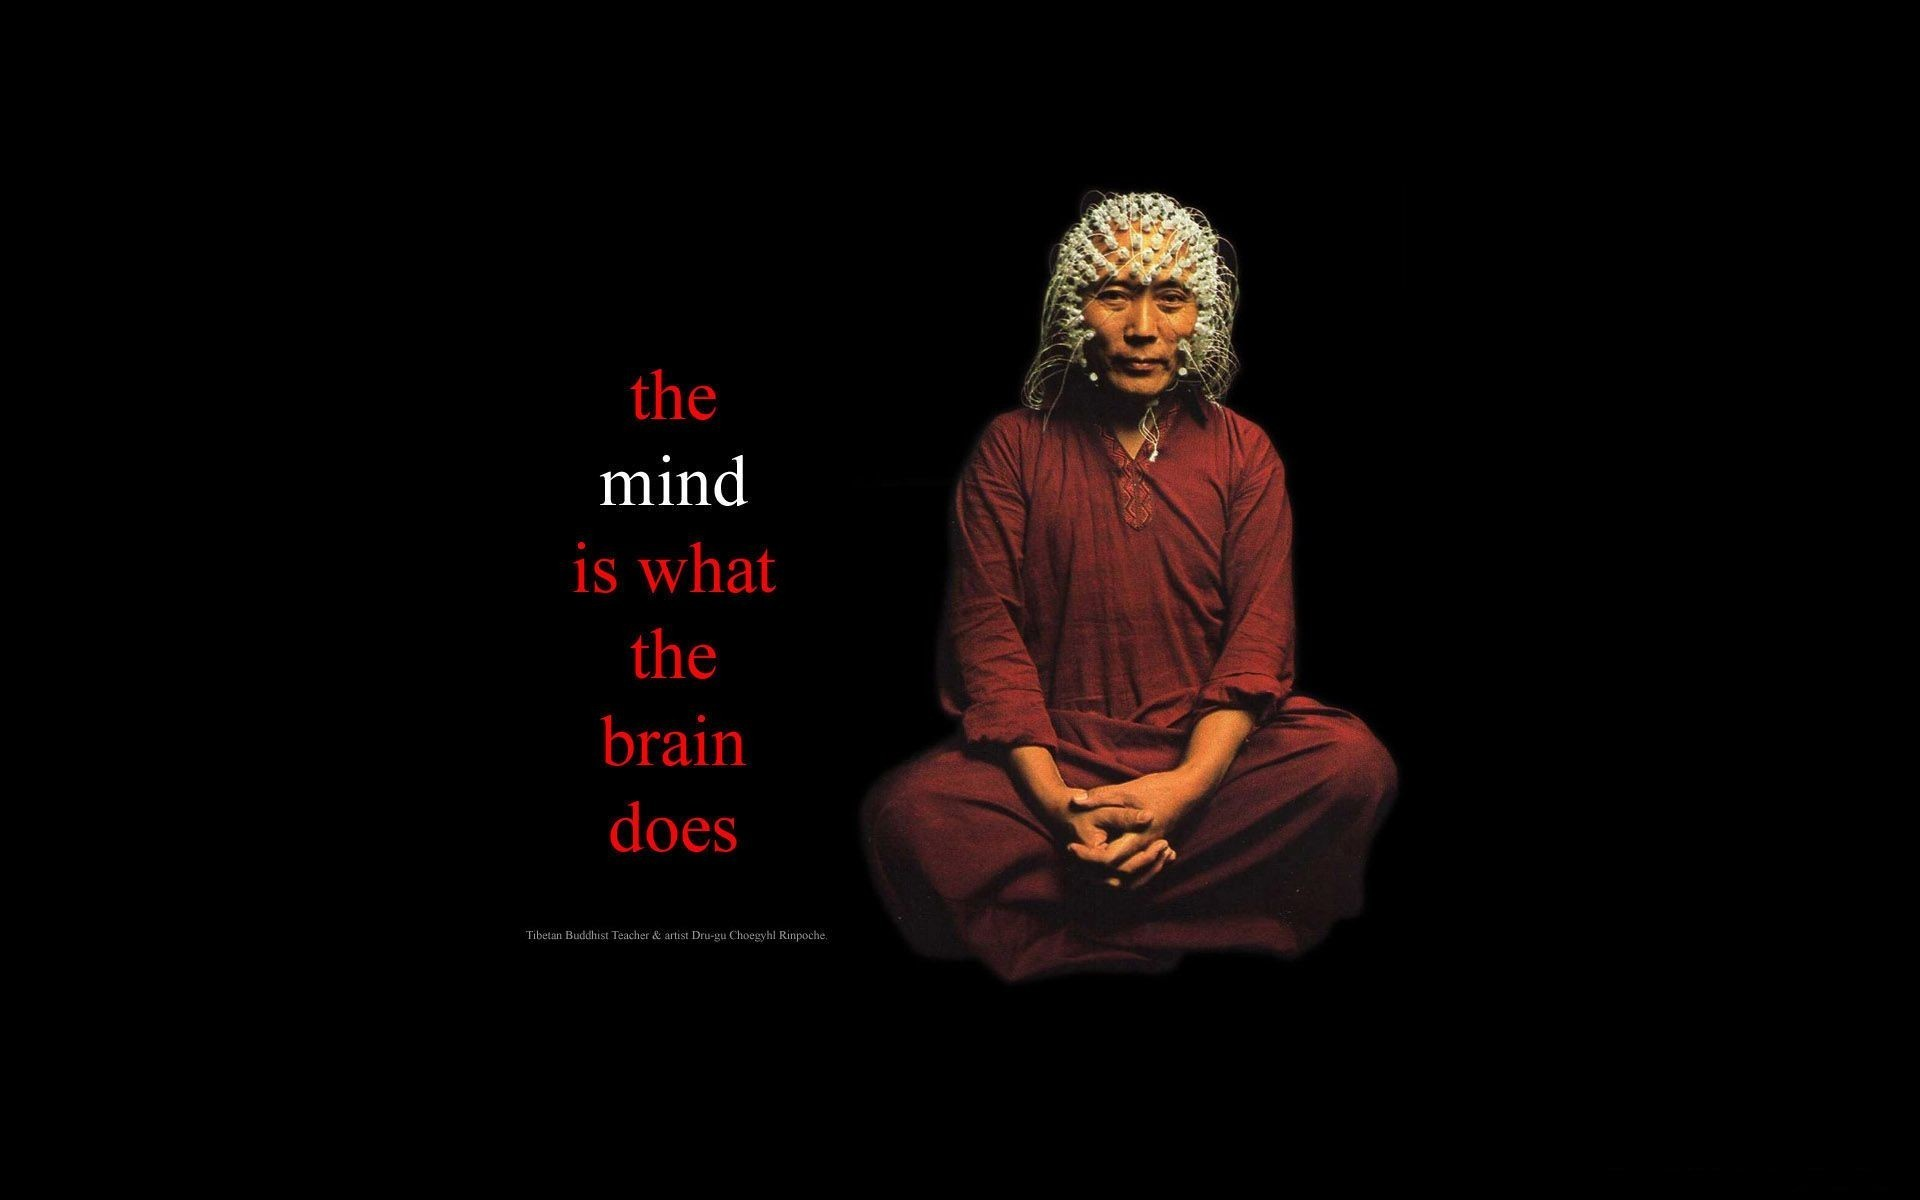 Wallpaper Buddha Quotes: Buddha Quotes Wallpaper (77+ Images